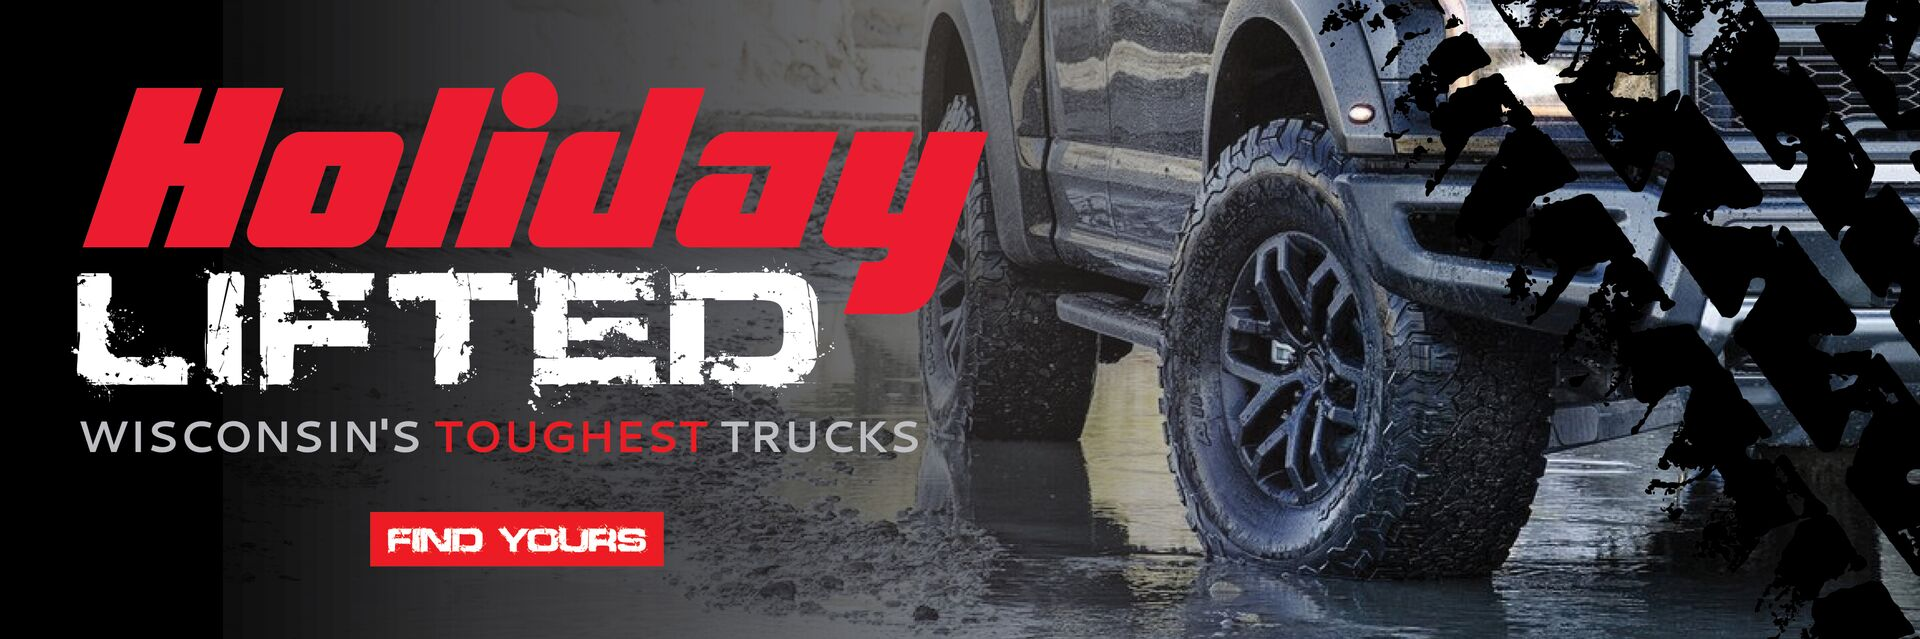 Custom Lifted Trucks at Holiday Automotive in Fond du Lac, WI